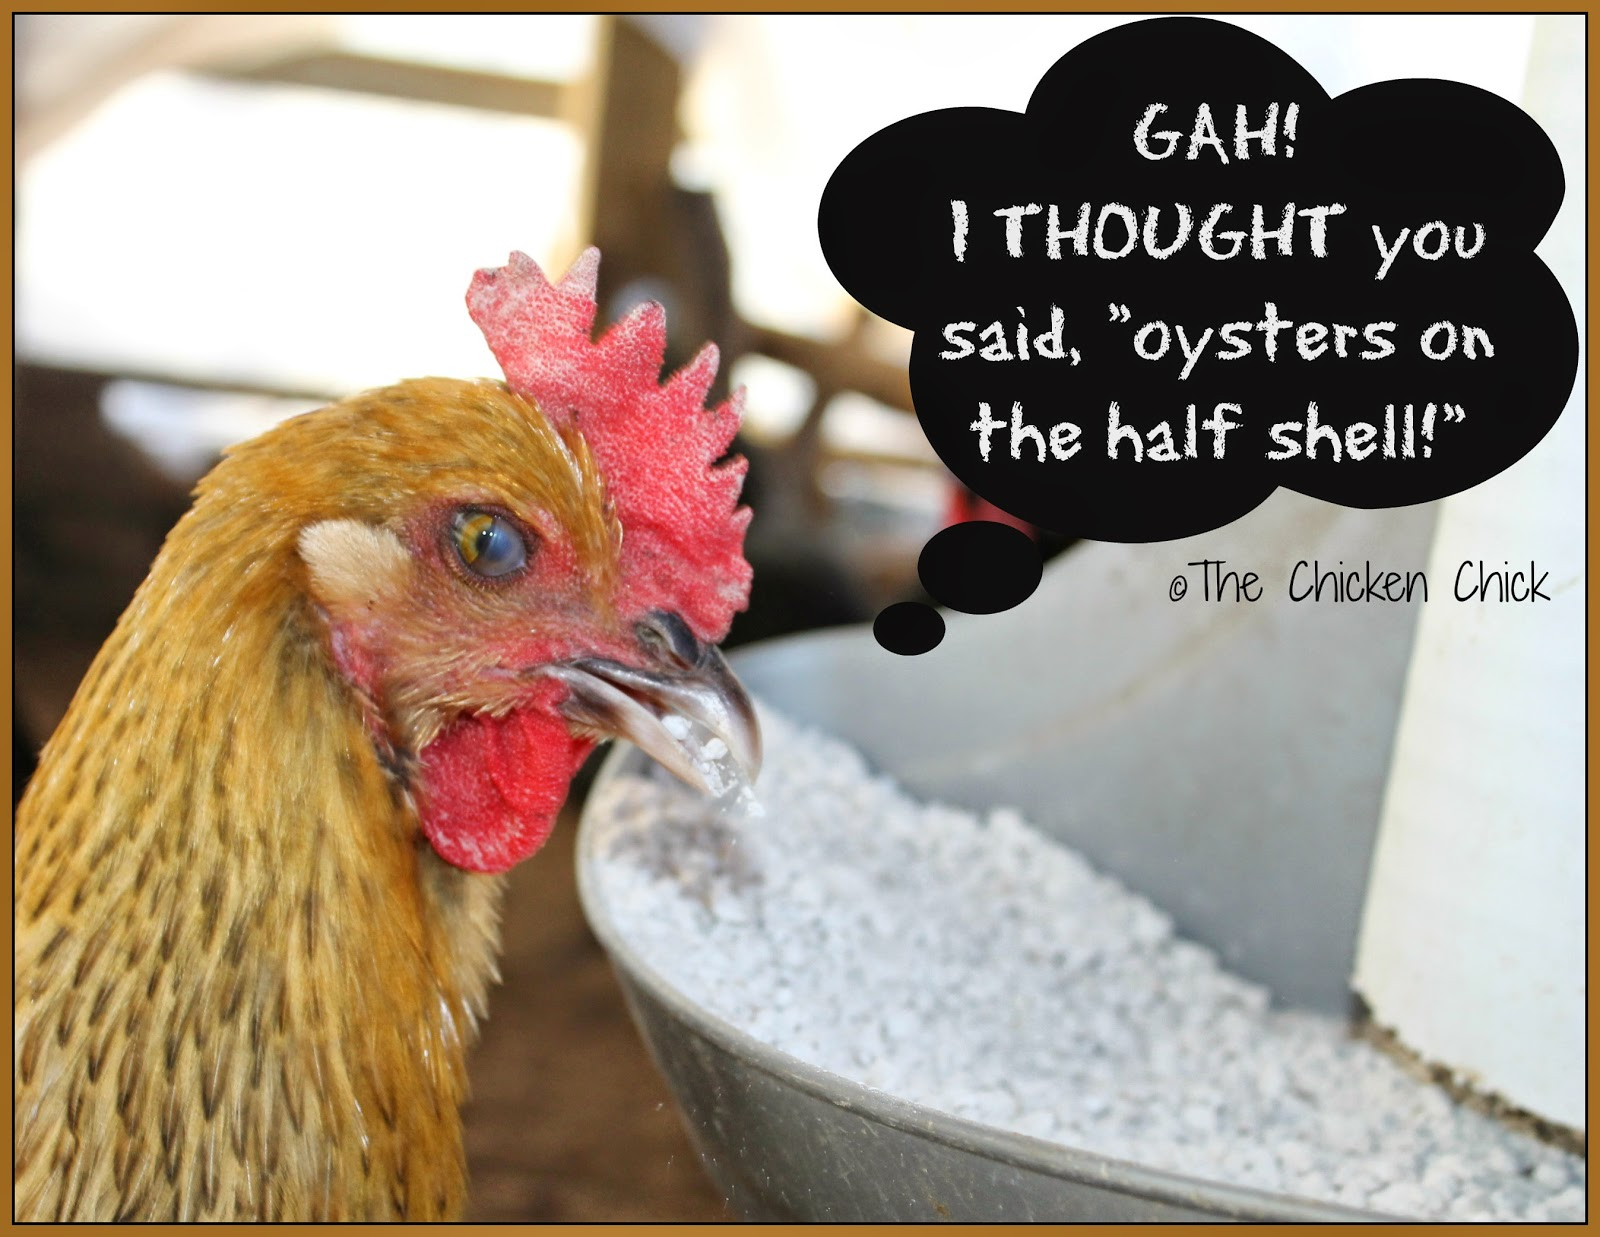 While layer feed contains some calcium, an additional source of calcium such as crushed oyster shells should be made available to laying hens in a separate dish, apart from the feed.